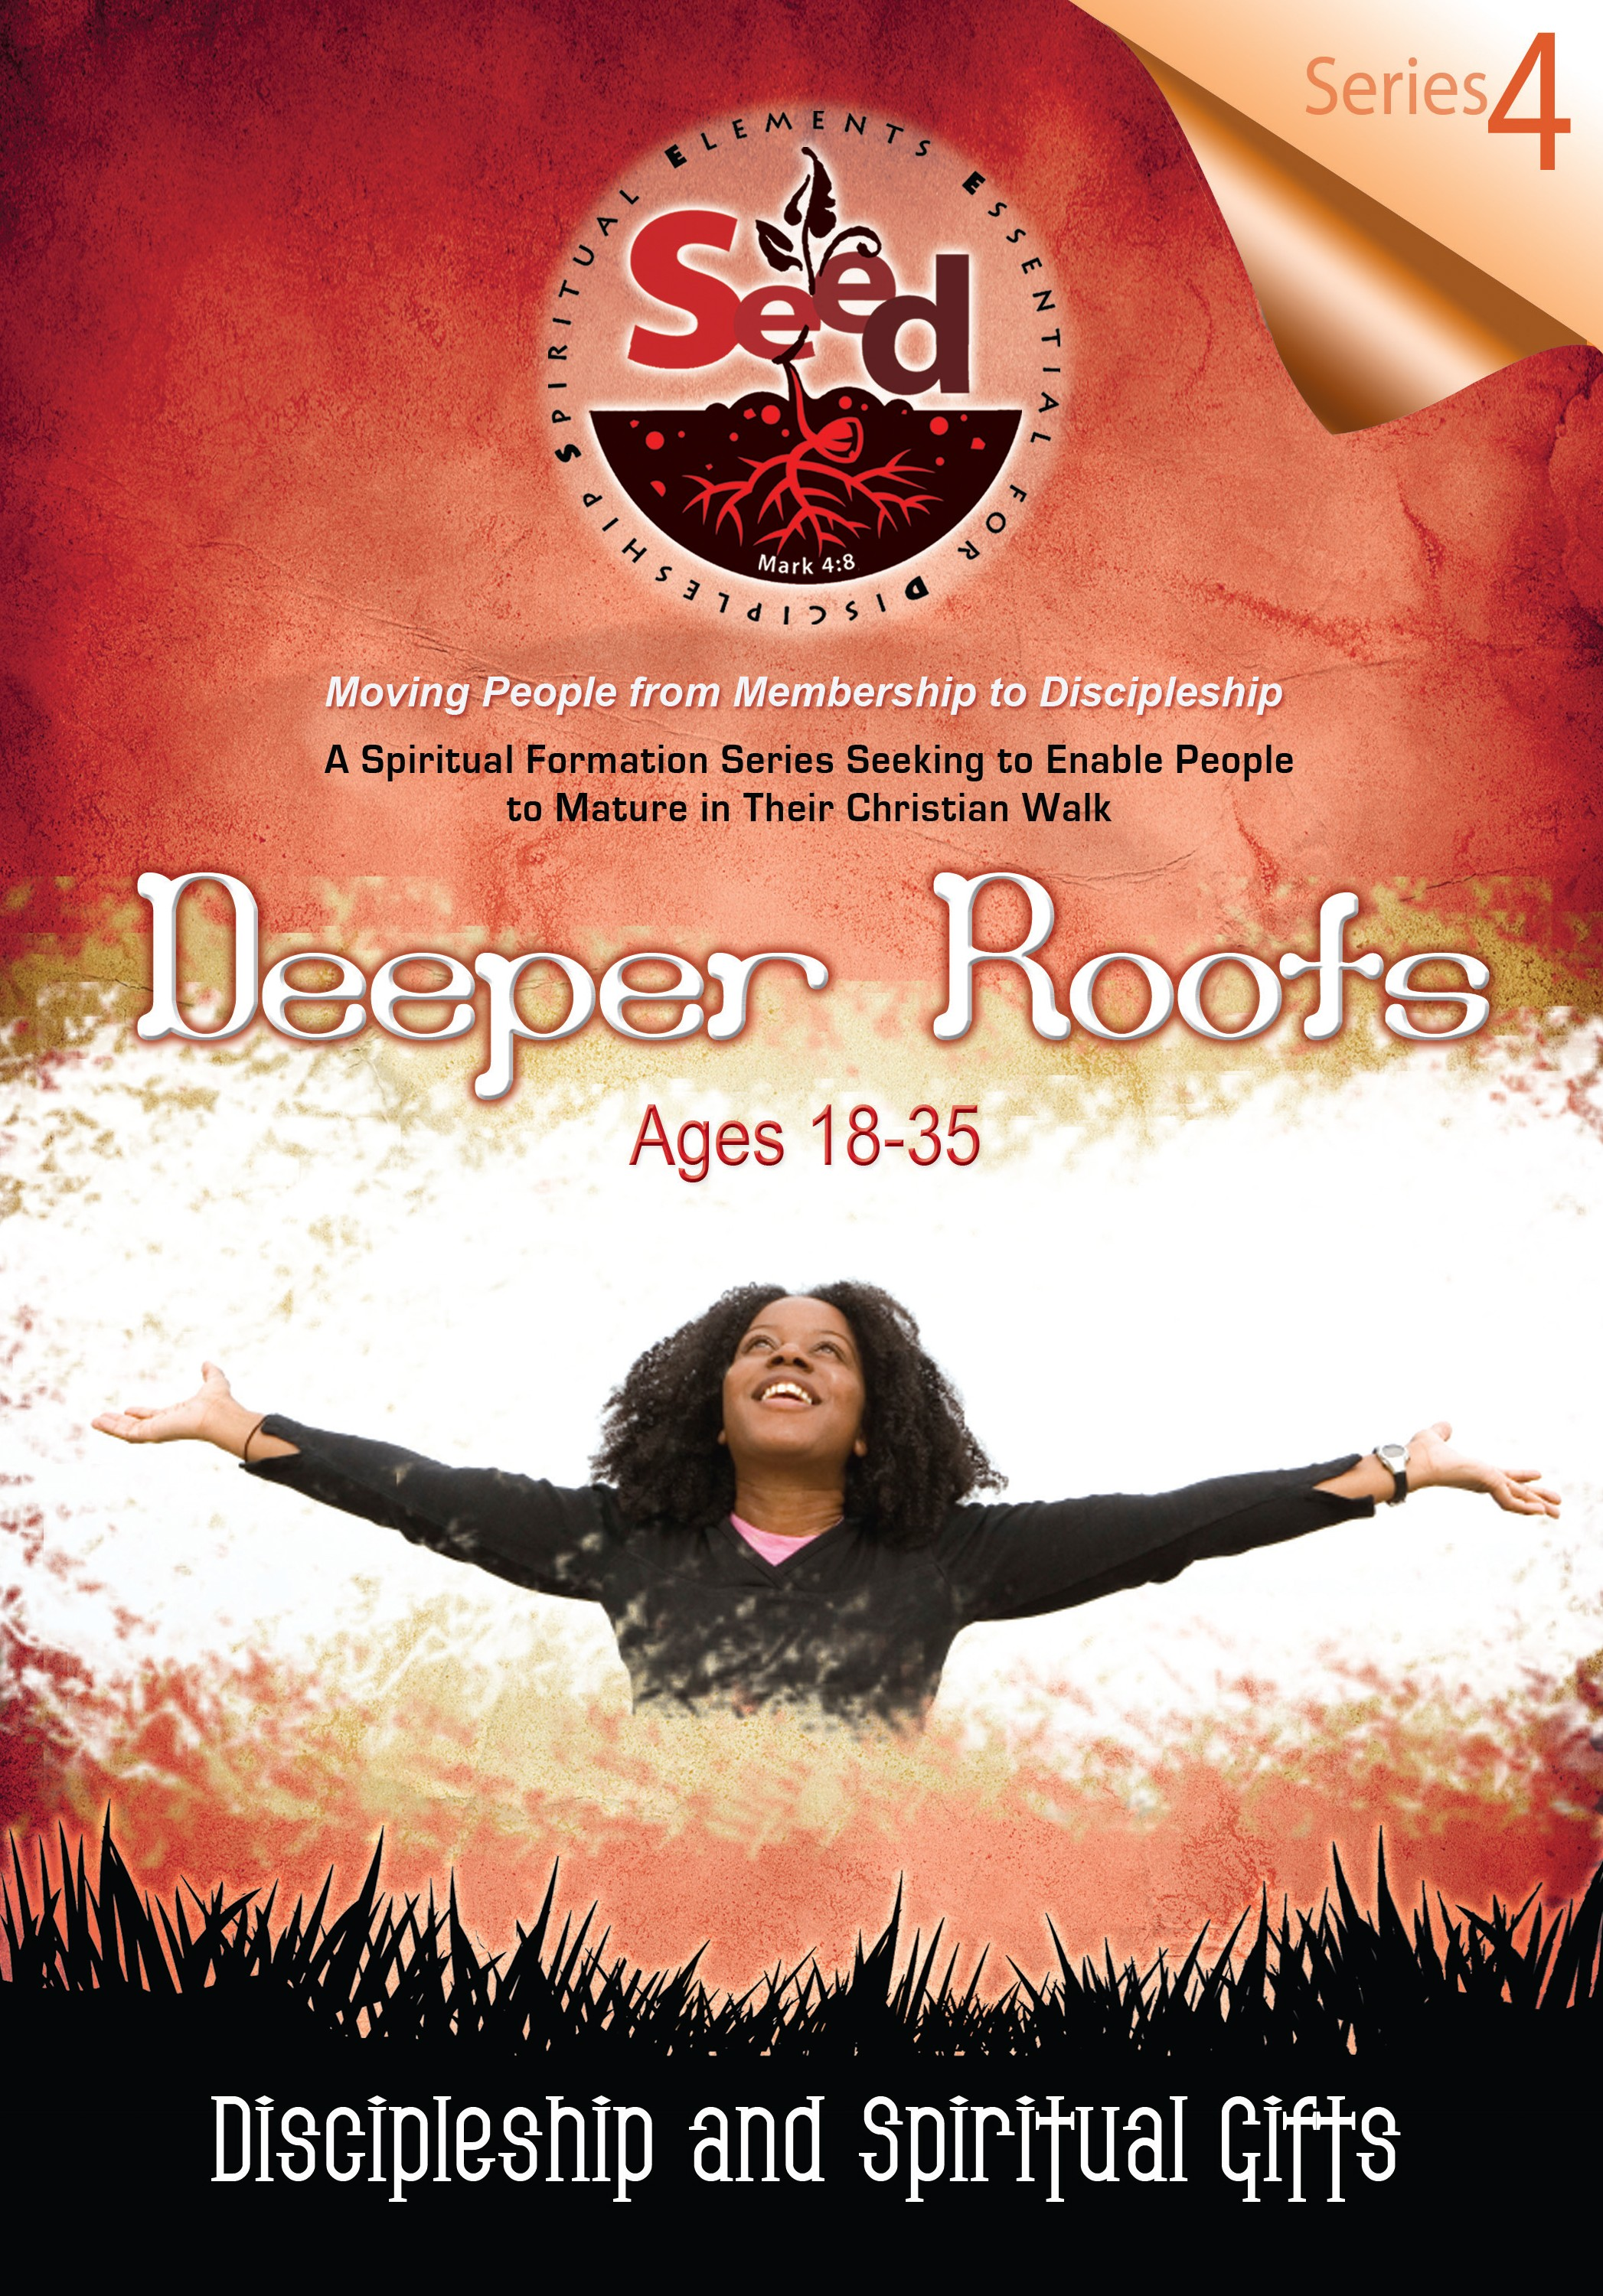 SEED Deeper Roots (Ages18-35): Series 4: Discipleship and Spiritual Gifts